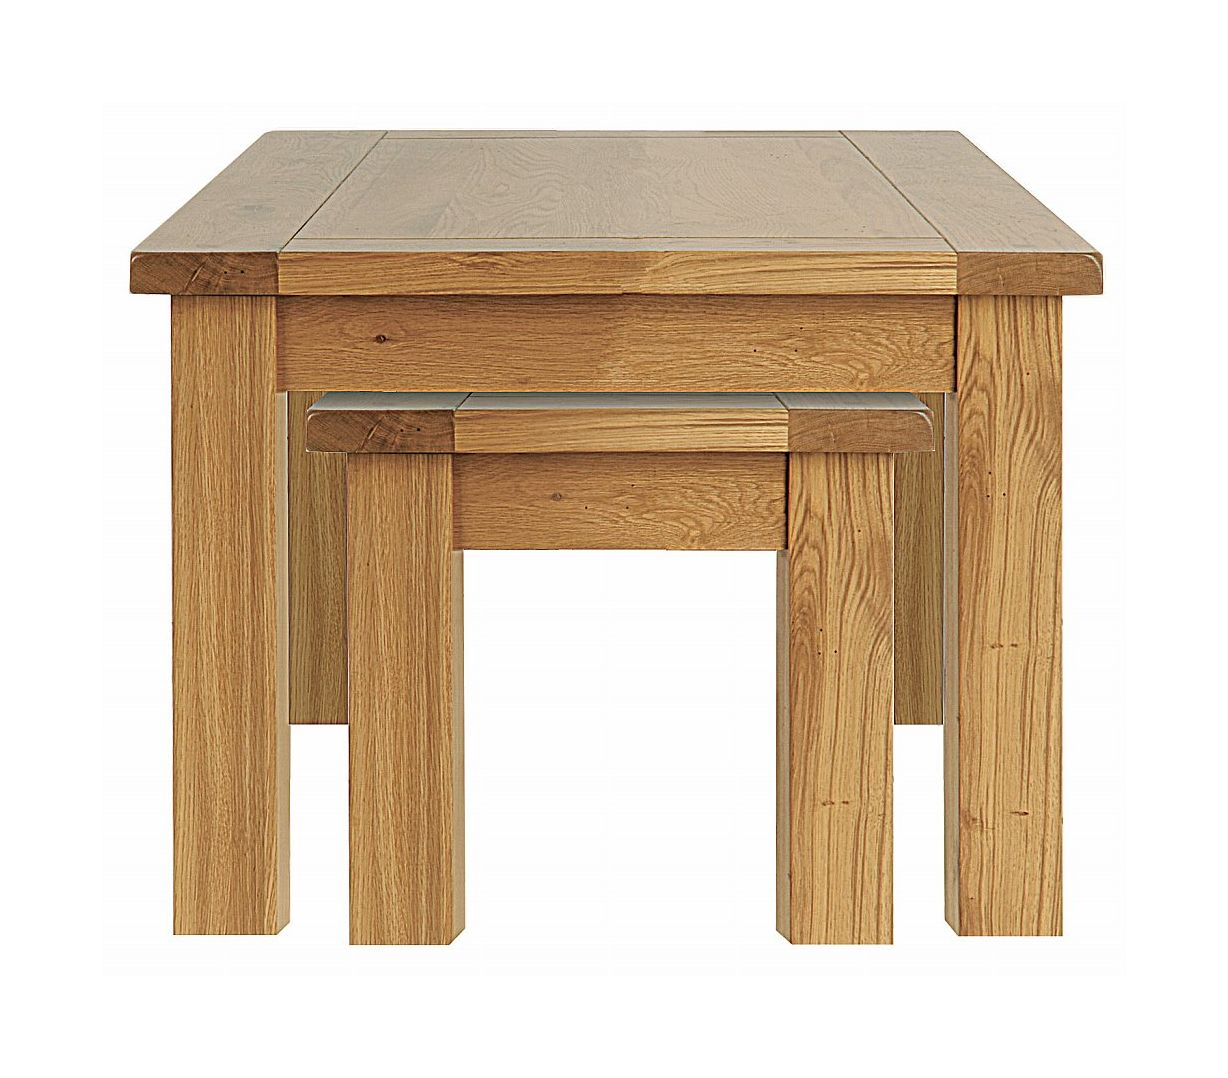 Mackay Collection Lille Nest of Tables : Lmorrisgrangegra7706 from www.richardfmackay.co.uk size 1228 x 1078 jpeg 151kB